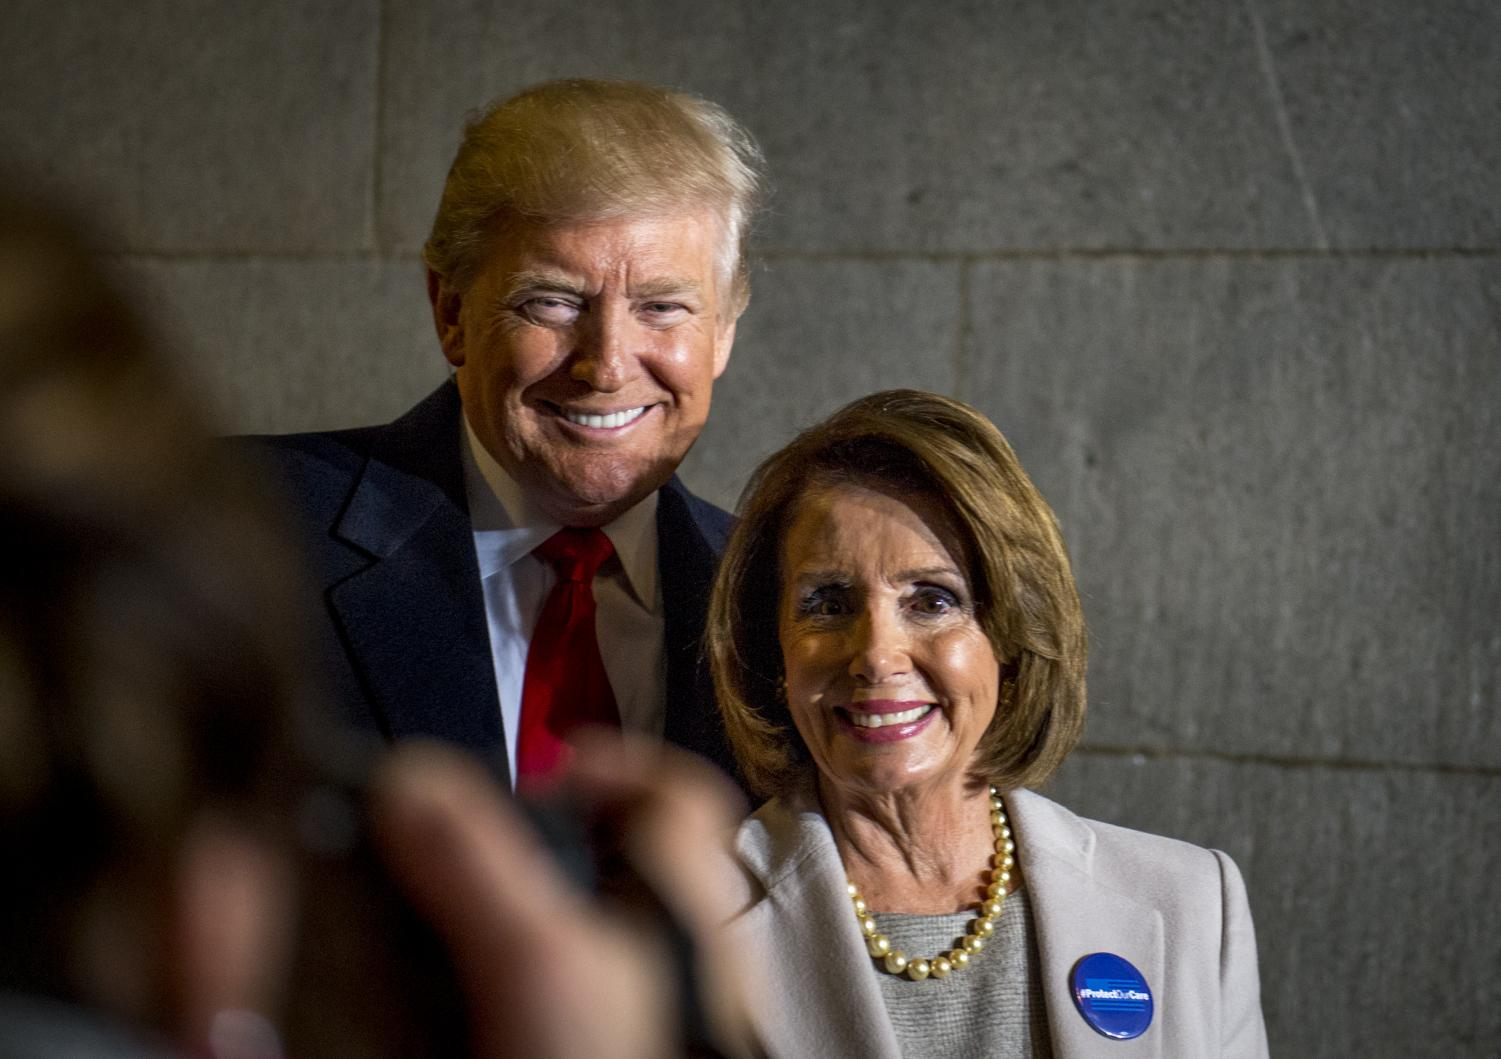 President Donald Trump pictured with Speaker of the House Nancy Pelosi